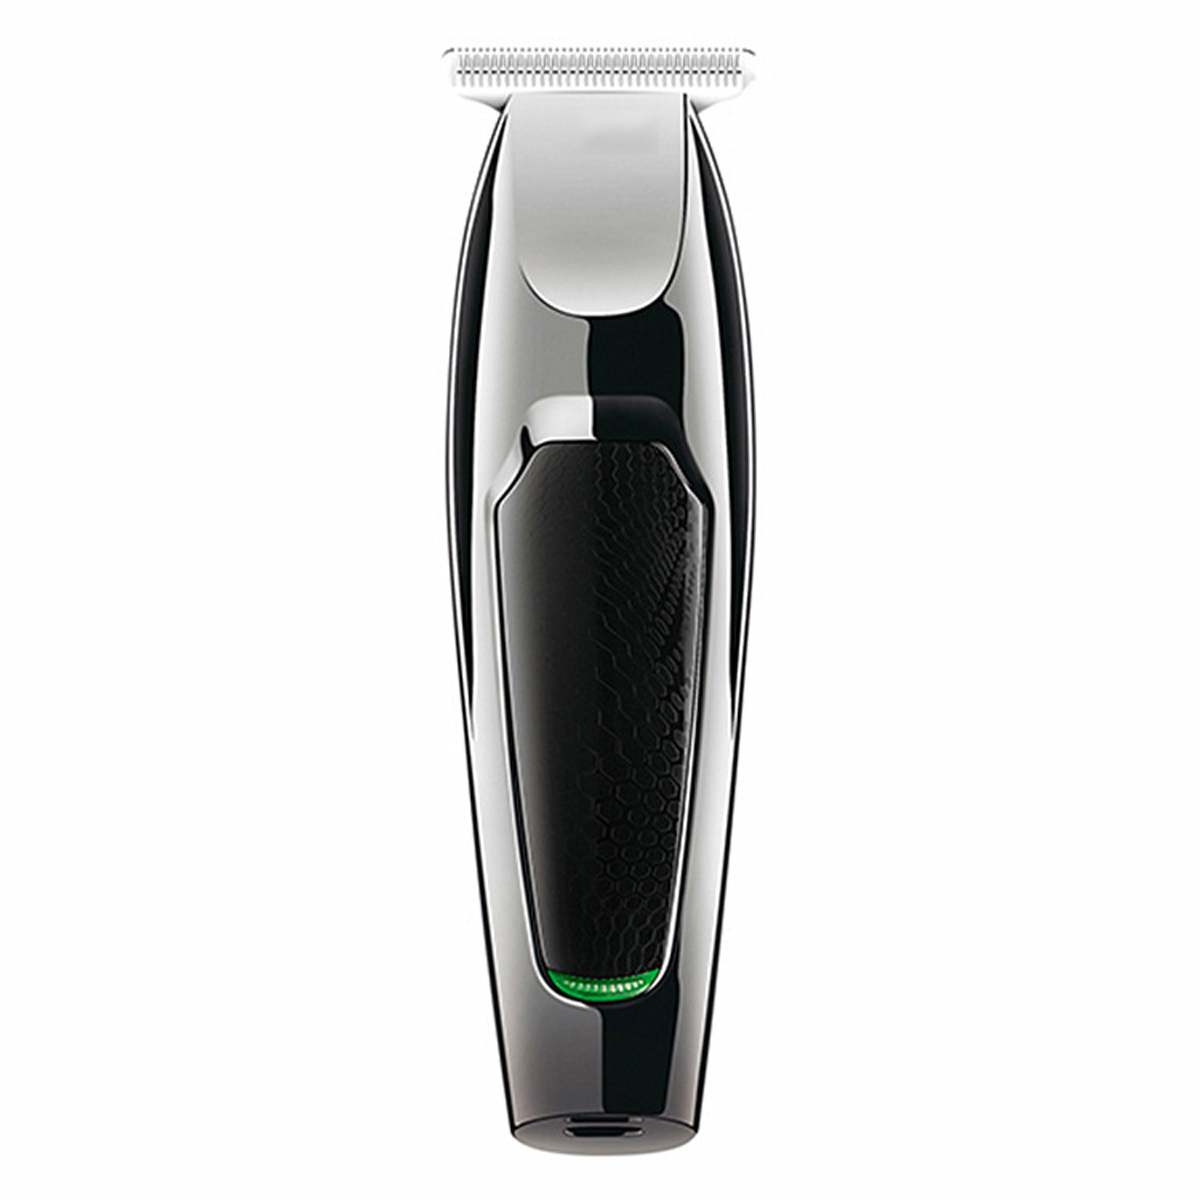 10W Electric Hair Trimmer USB Rechargeable With 5 Limit Comb Minimum Hair Length 0.1mm Hair Carving